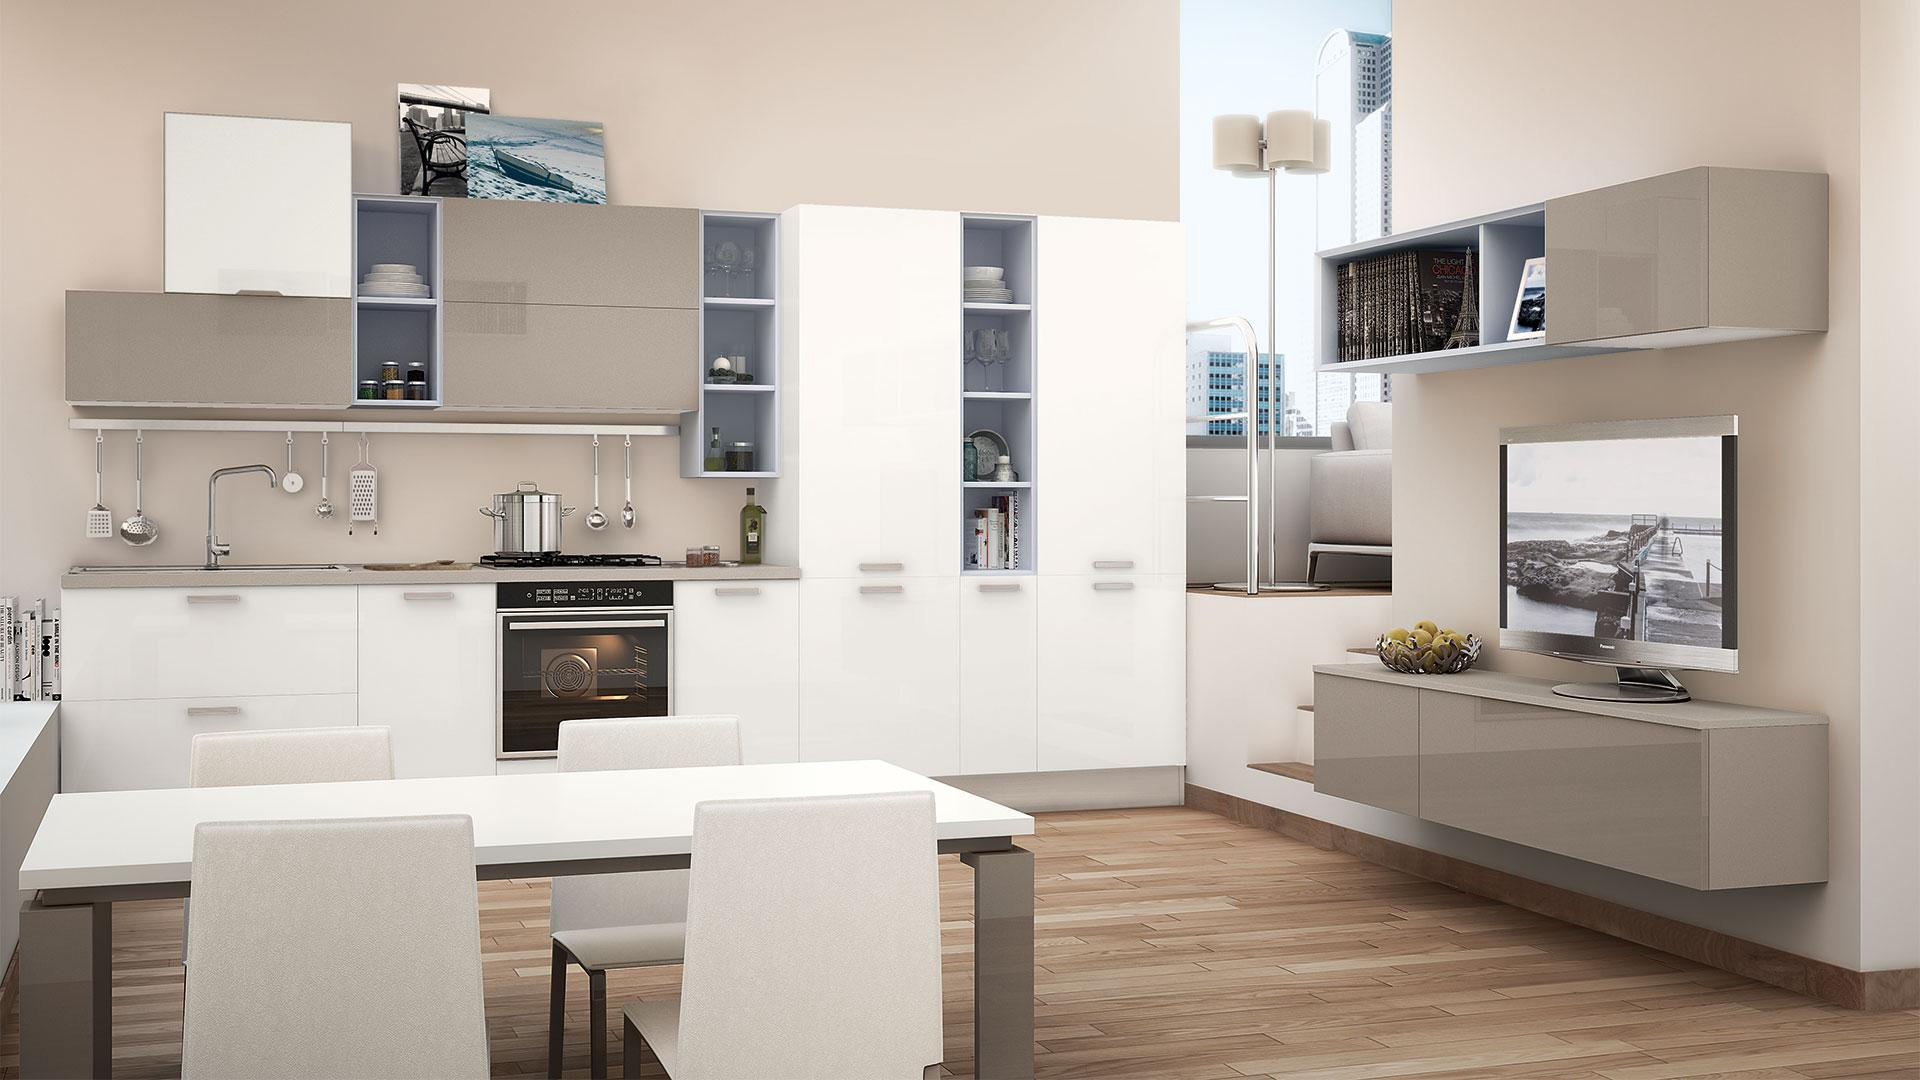 Cucine Lube Design Large Presence Abroad For Cucine Lube Home Appliances World